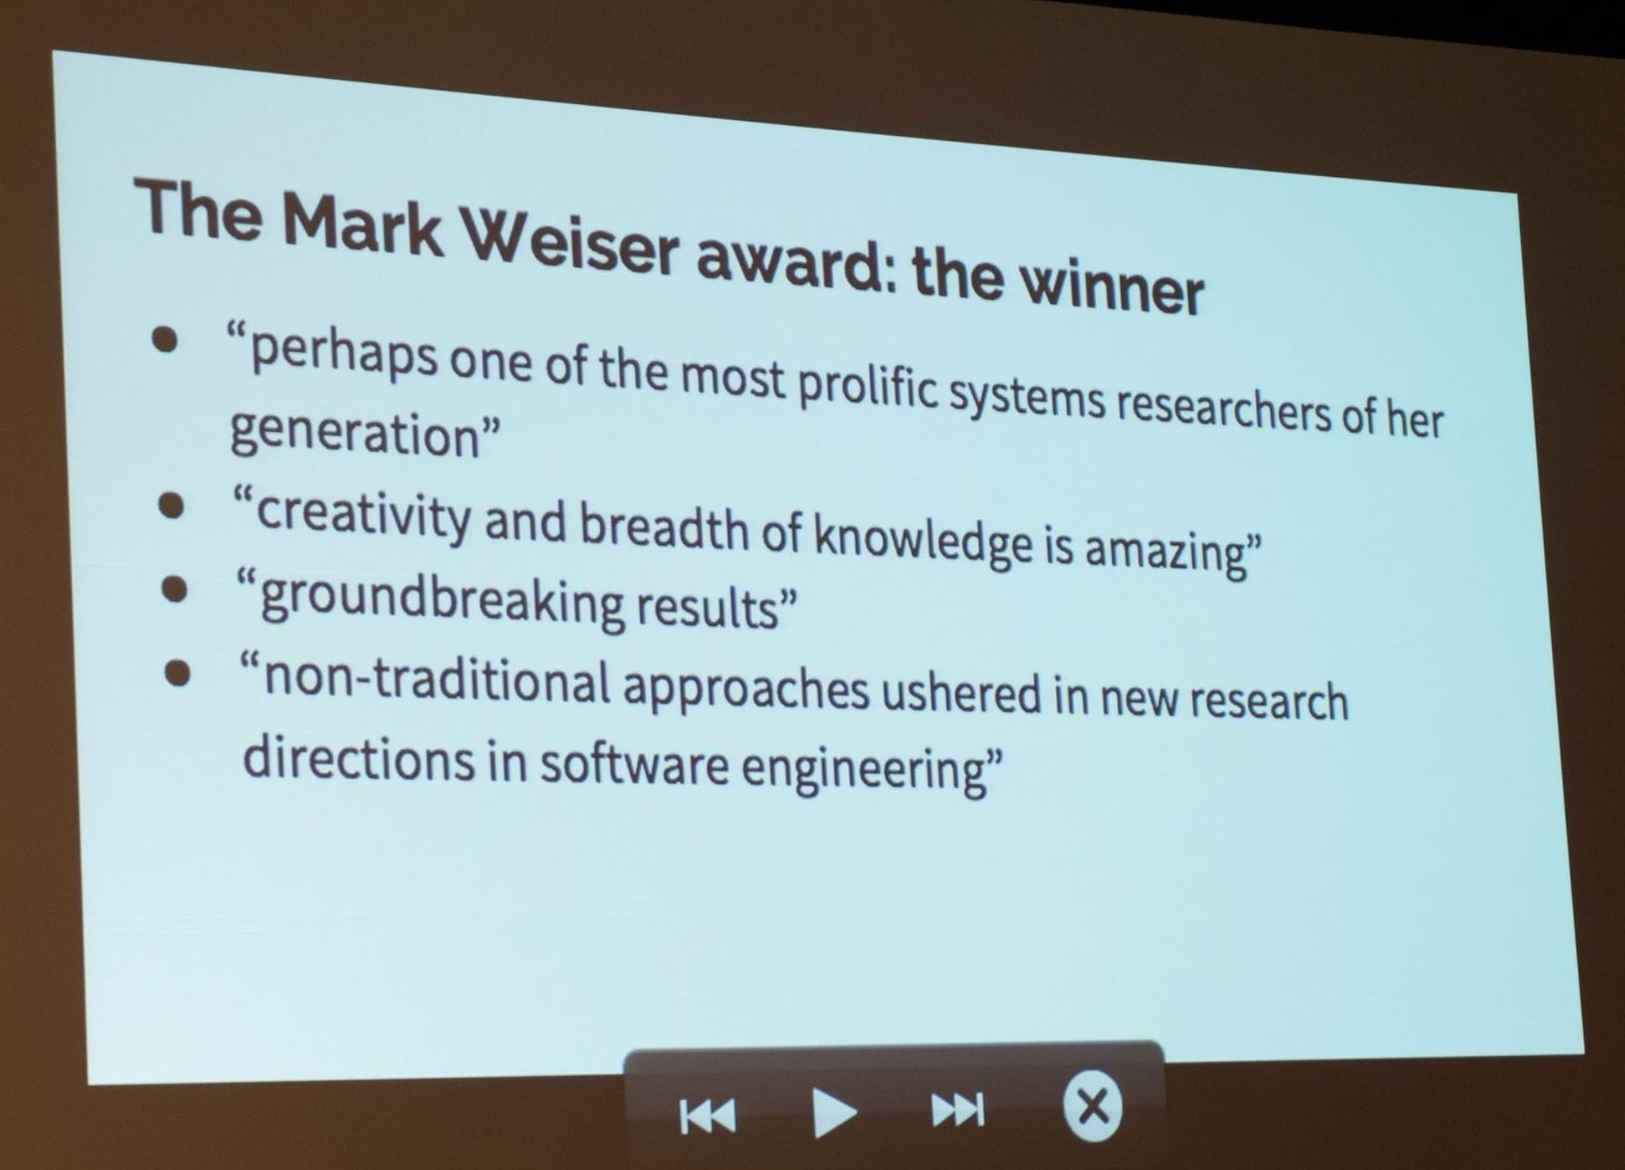 yy_mark_weiser_award2